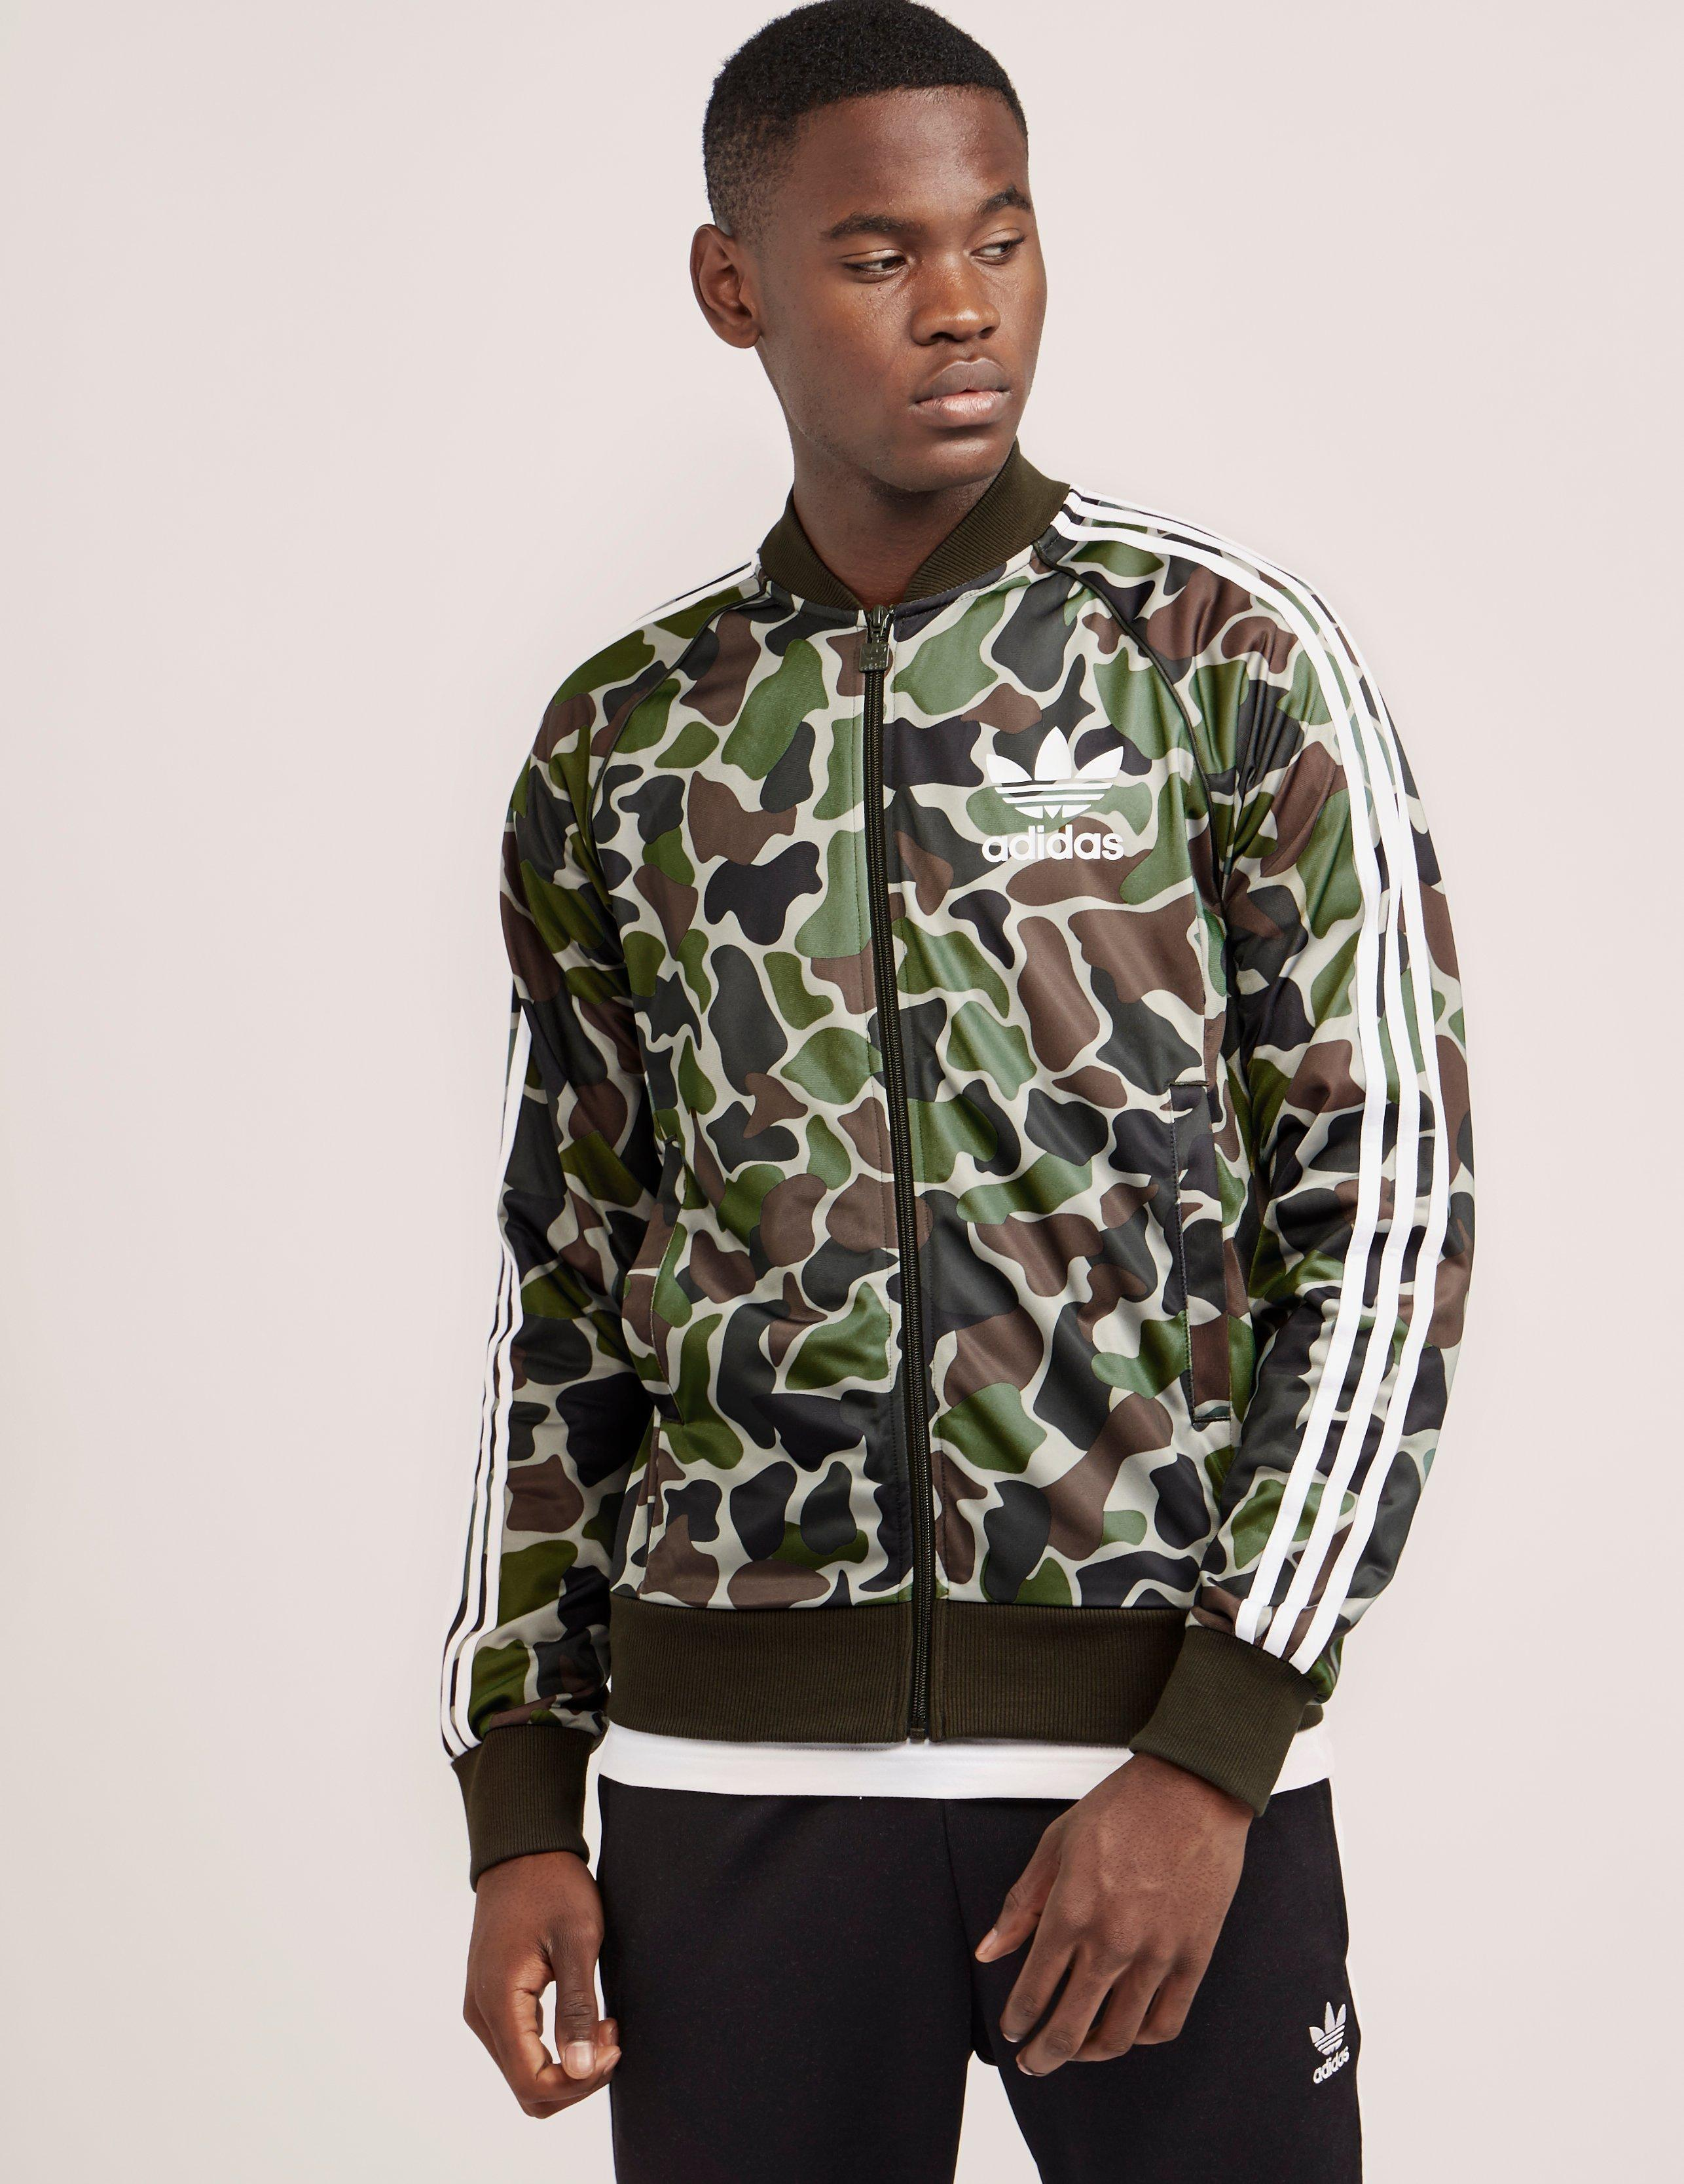 Originals Camouflage track jacket Black